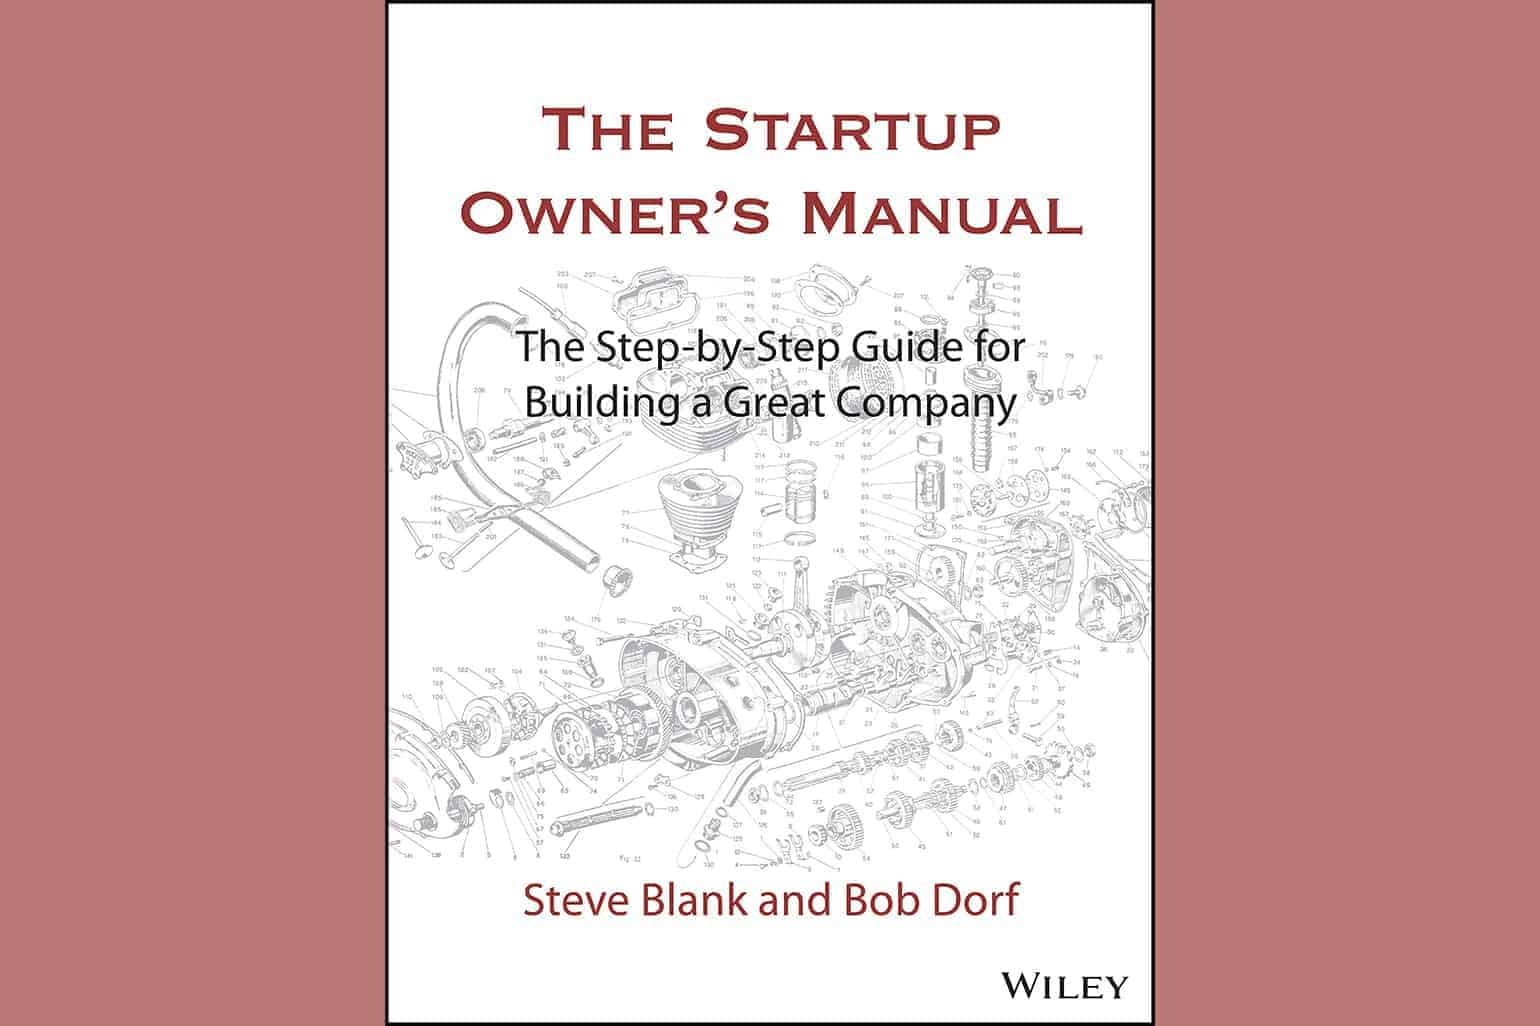 The Startup Owners Manual The Step By Step Guide For Building A Great Company By Steve Blank And Bob Dorf